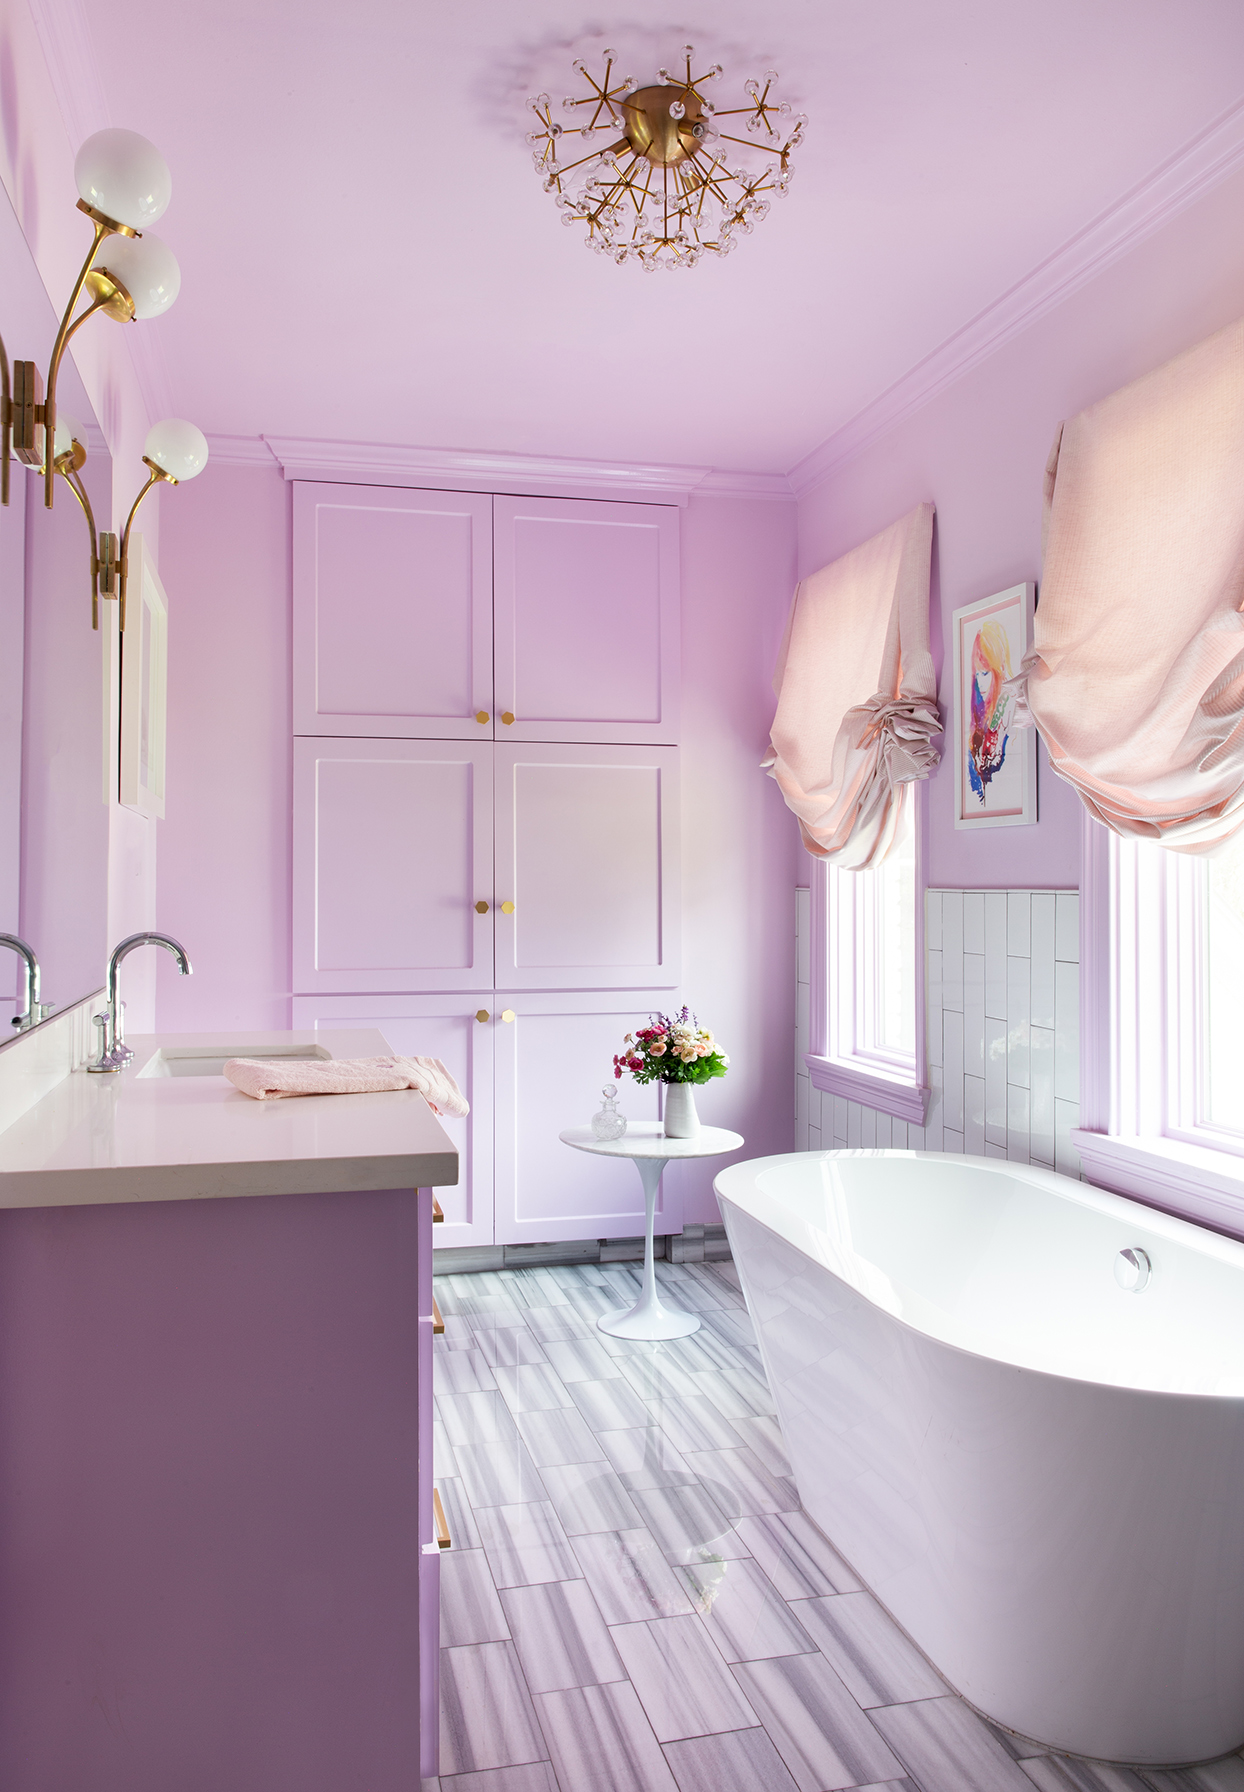 lavender and white bathroom with light pink accents